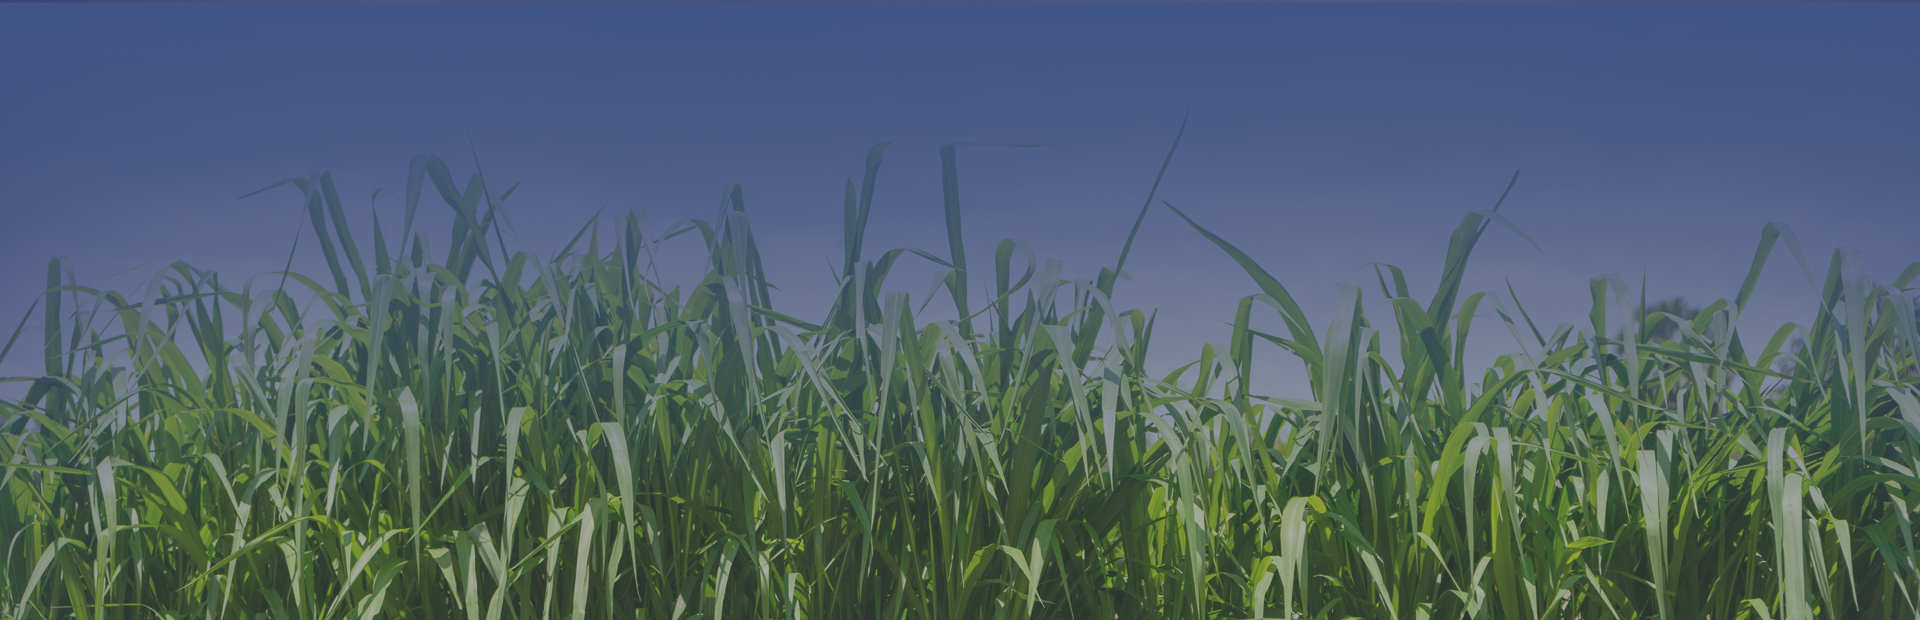 sugarcane leaves banner